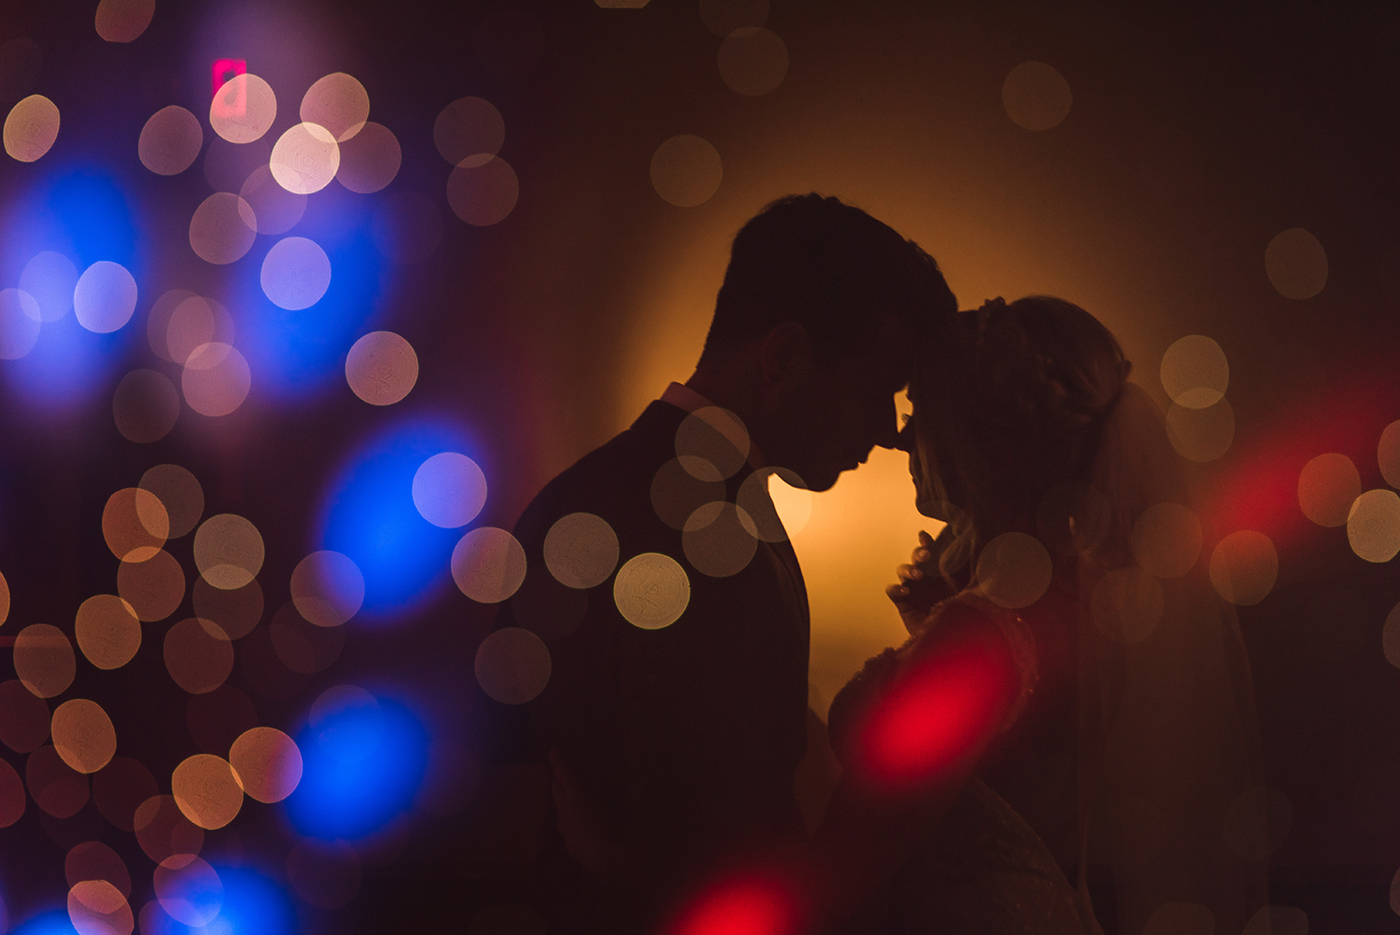 10 Hours Coverage - More than enough time for everything in your day. Made especially true when partnered with the Pre-wedding Timeline Meeting. Time for: getting ready, first look, party shots, bridal portraits, ceremony, family portraits, reception + dancing!